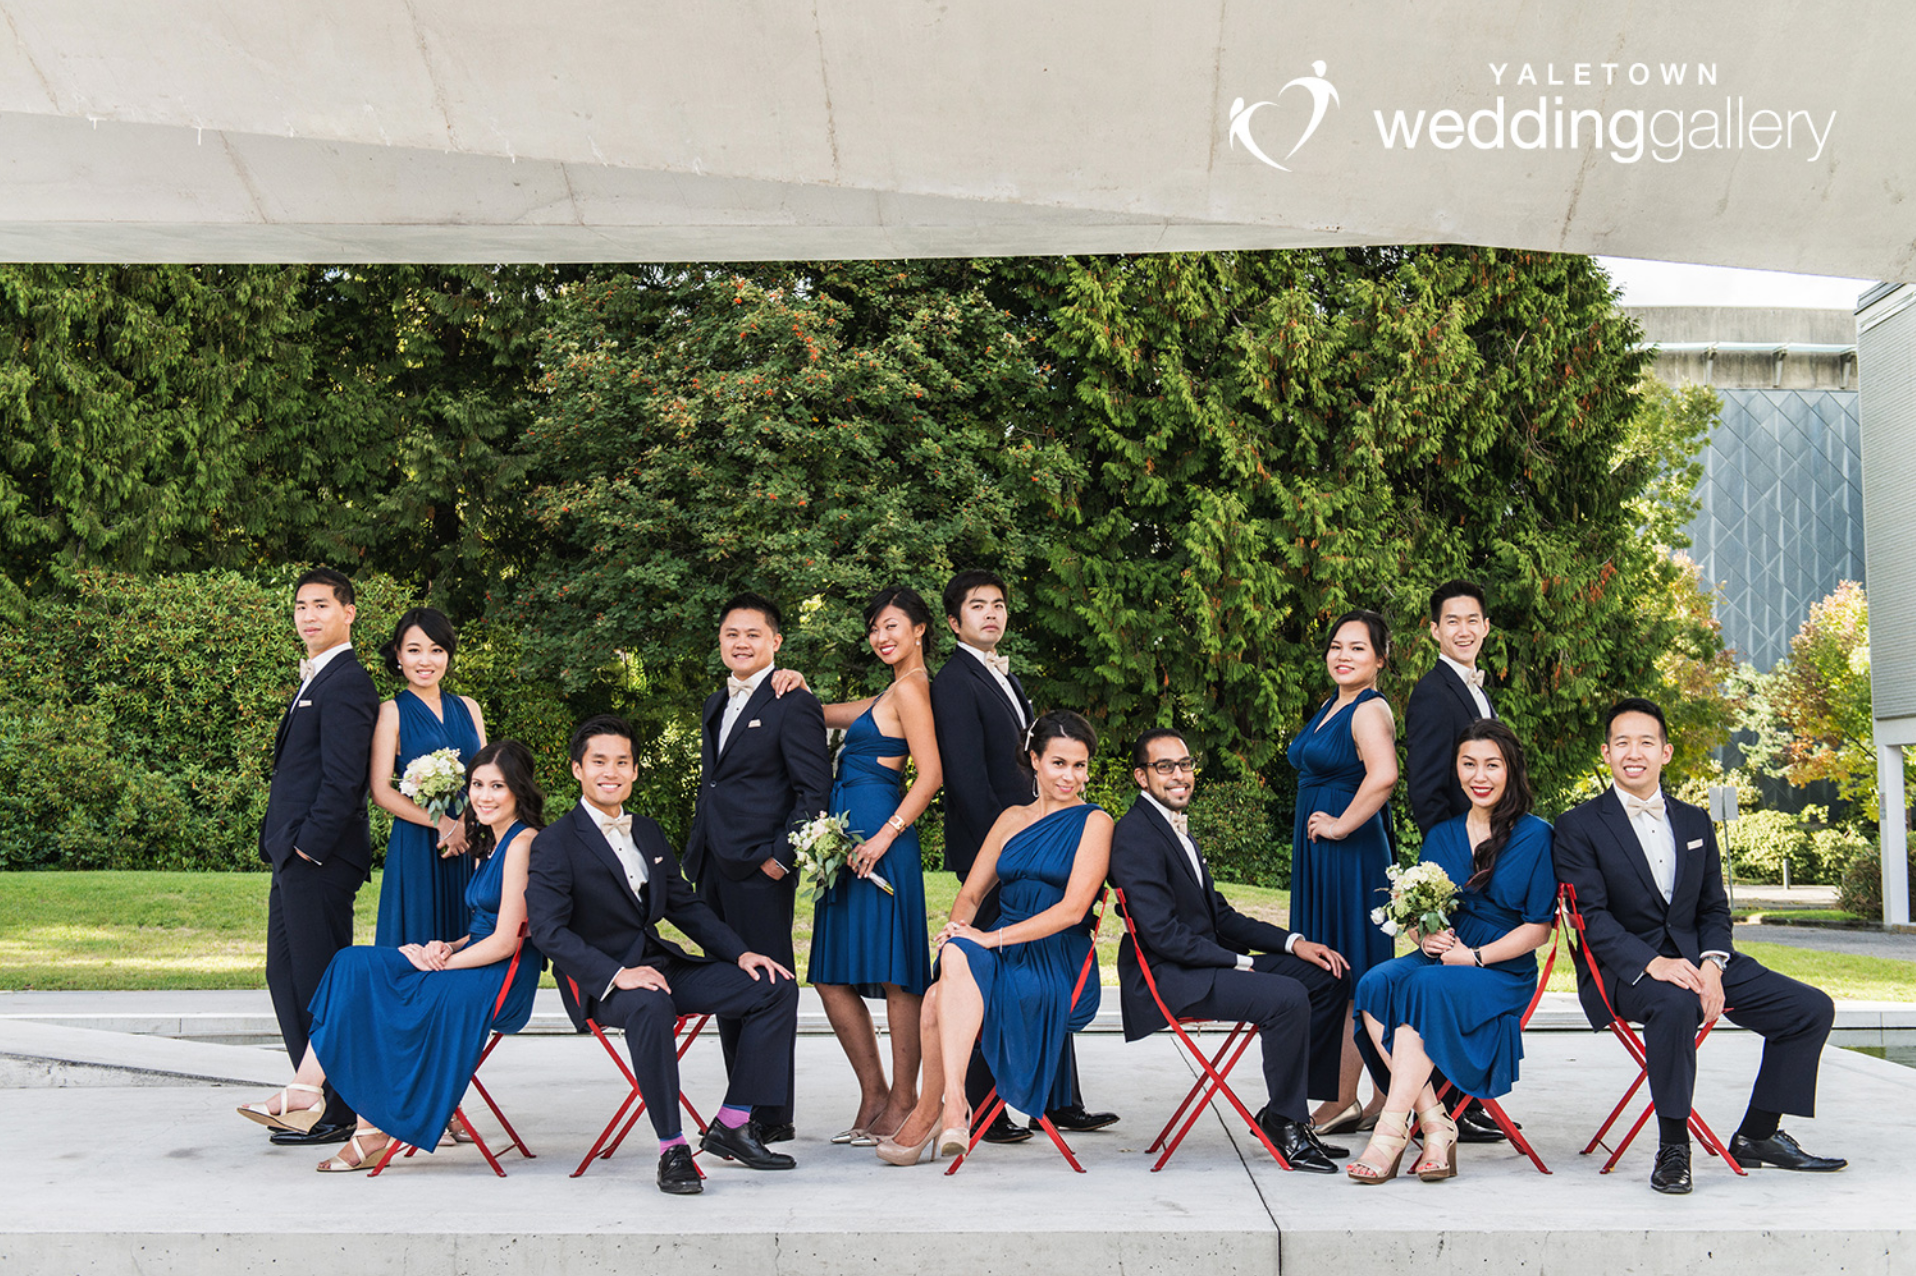 bridal-party-ubc-campus-yaletown-wedding-gallery-vancouver-wedding-photographers-vancouver-wedding-photo